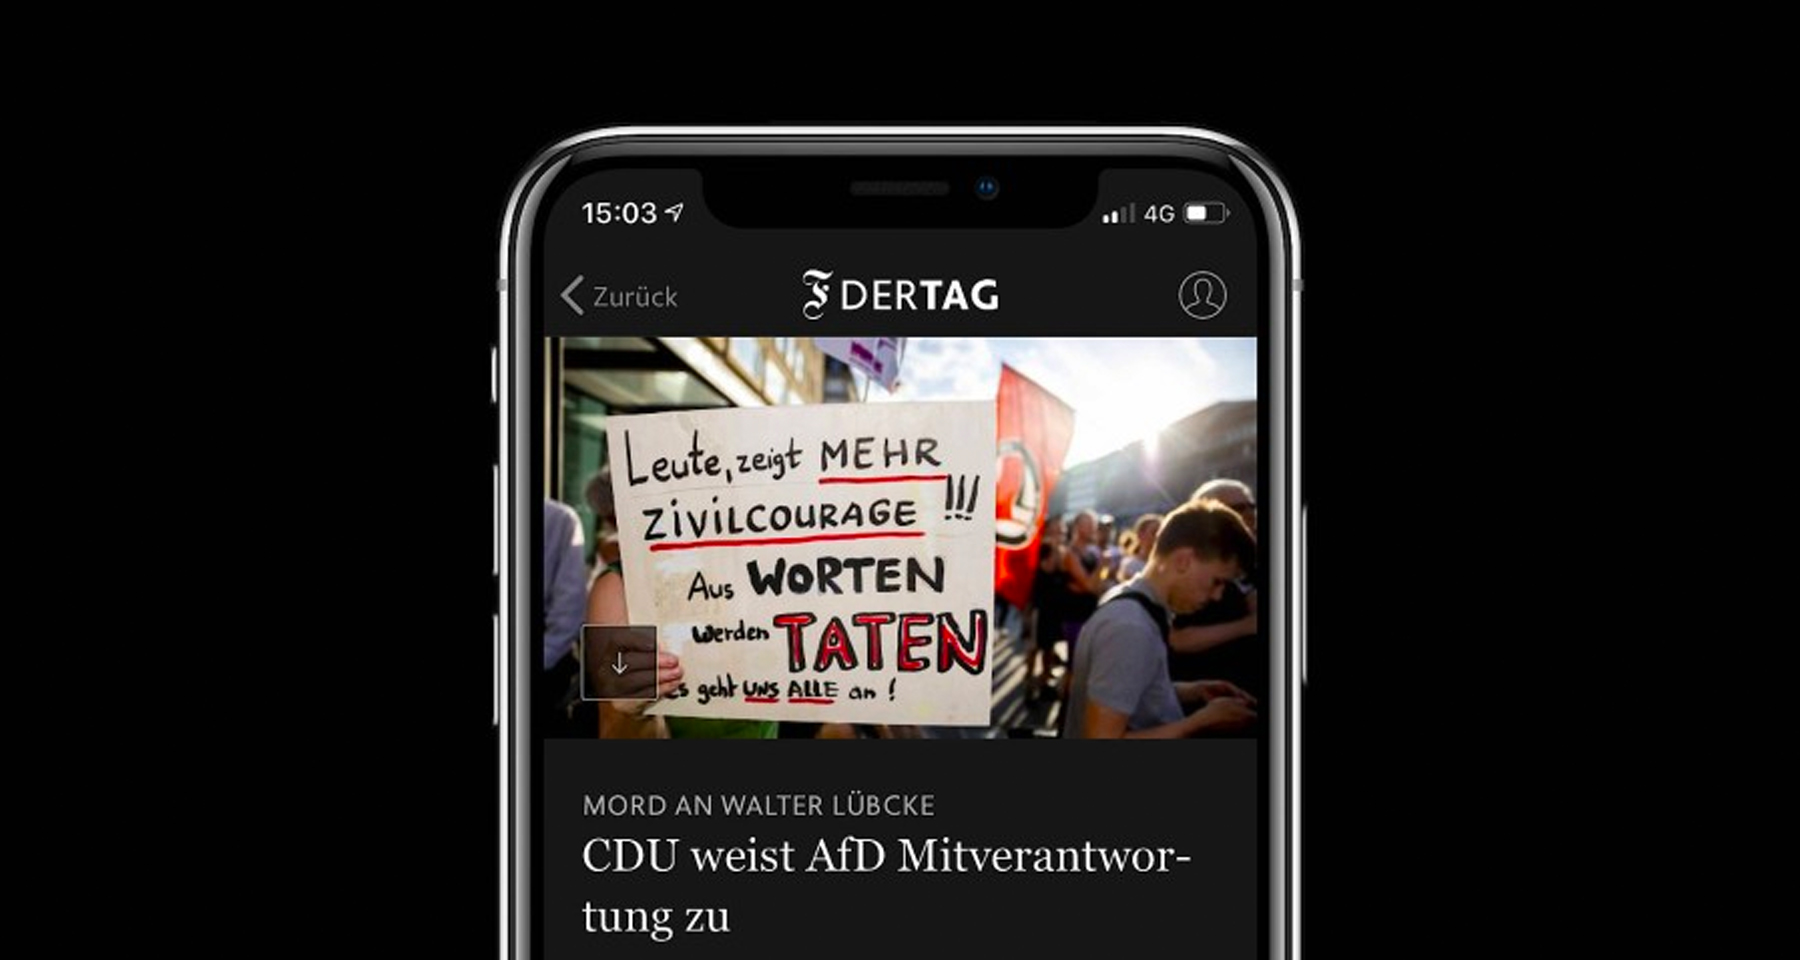 Der Tag app uses automatic content curation to grow digital subscriptions